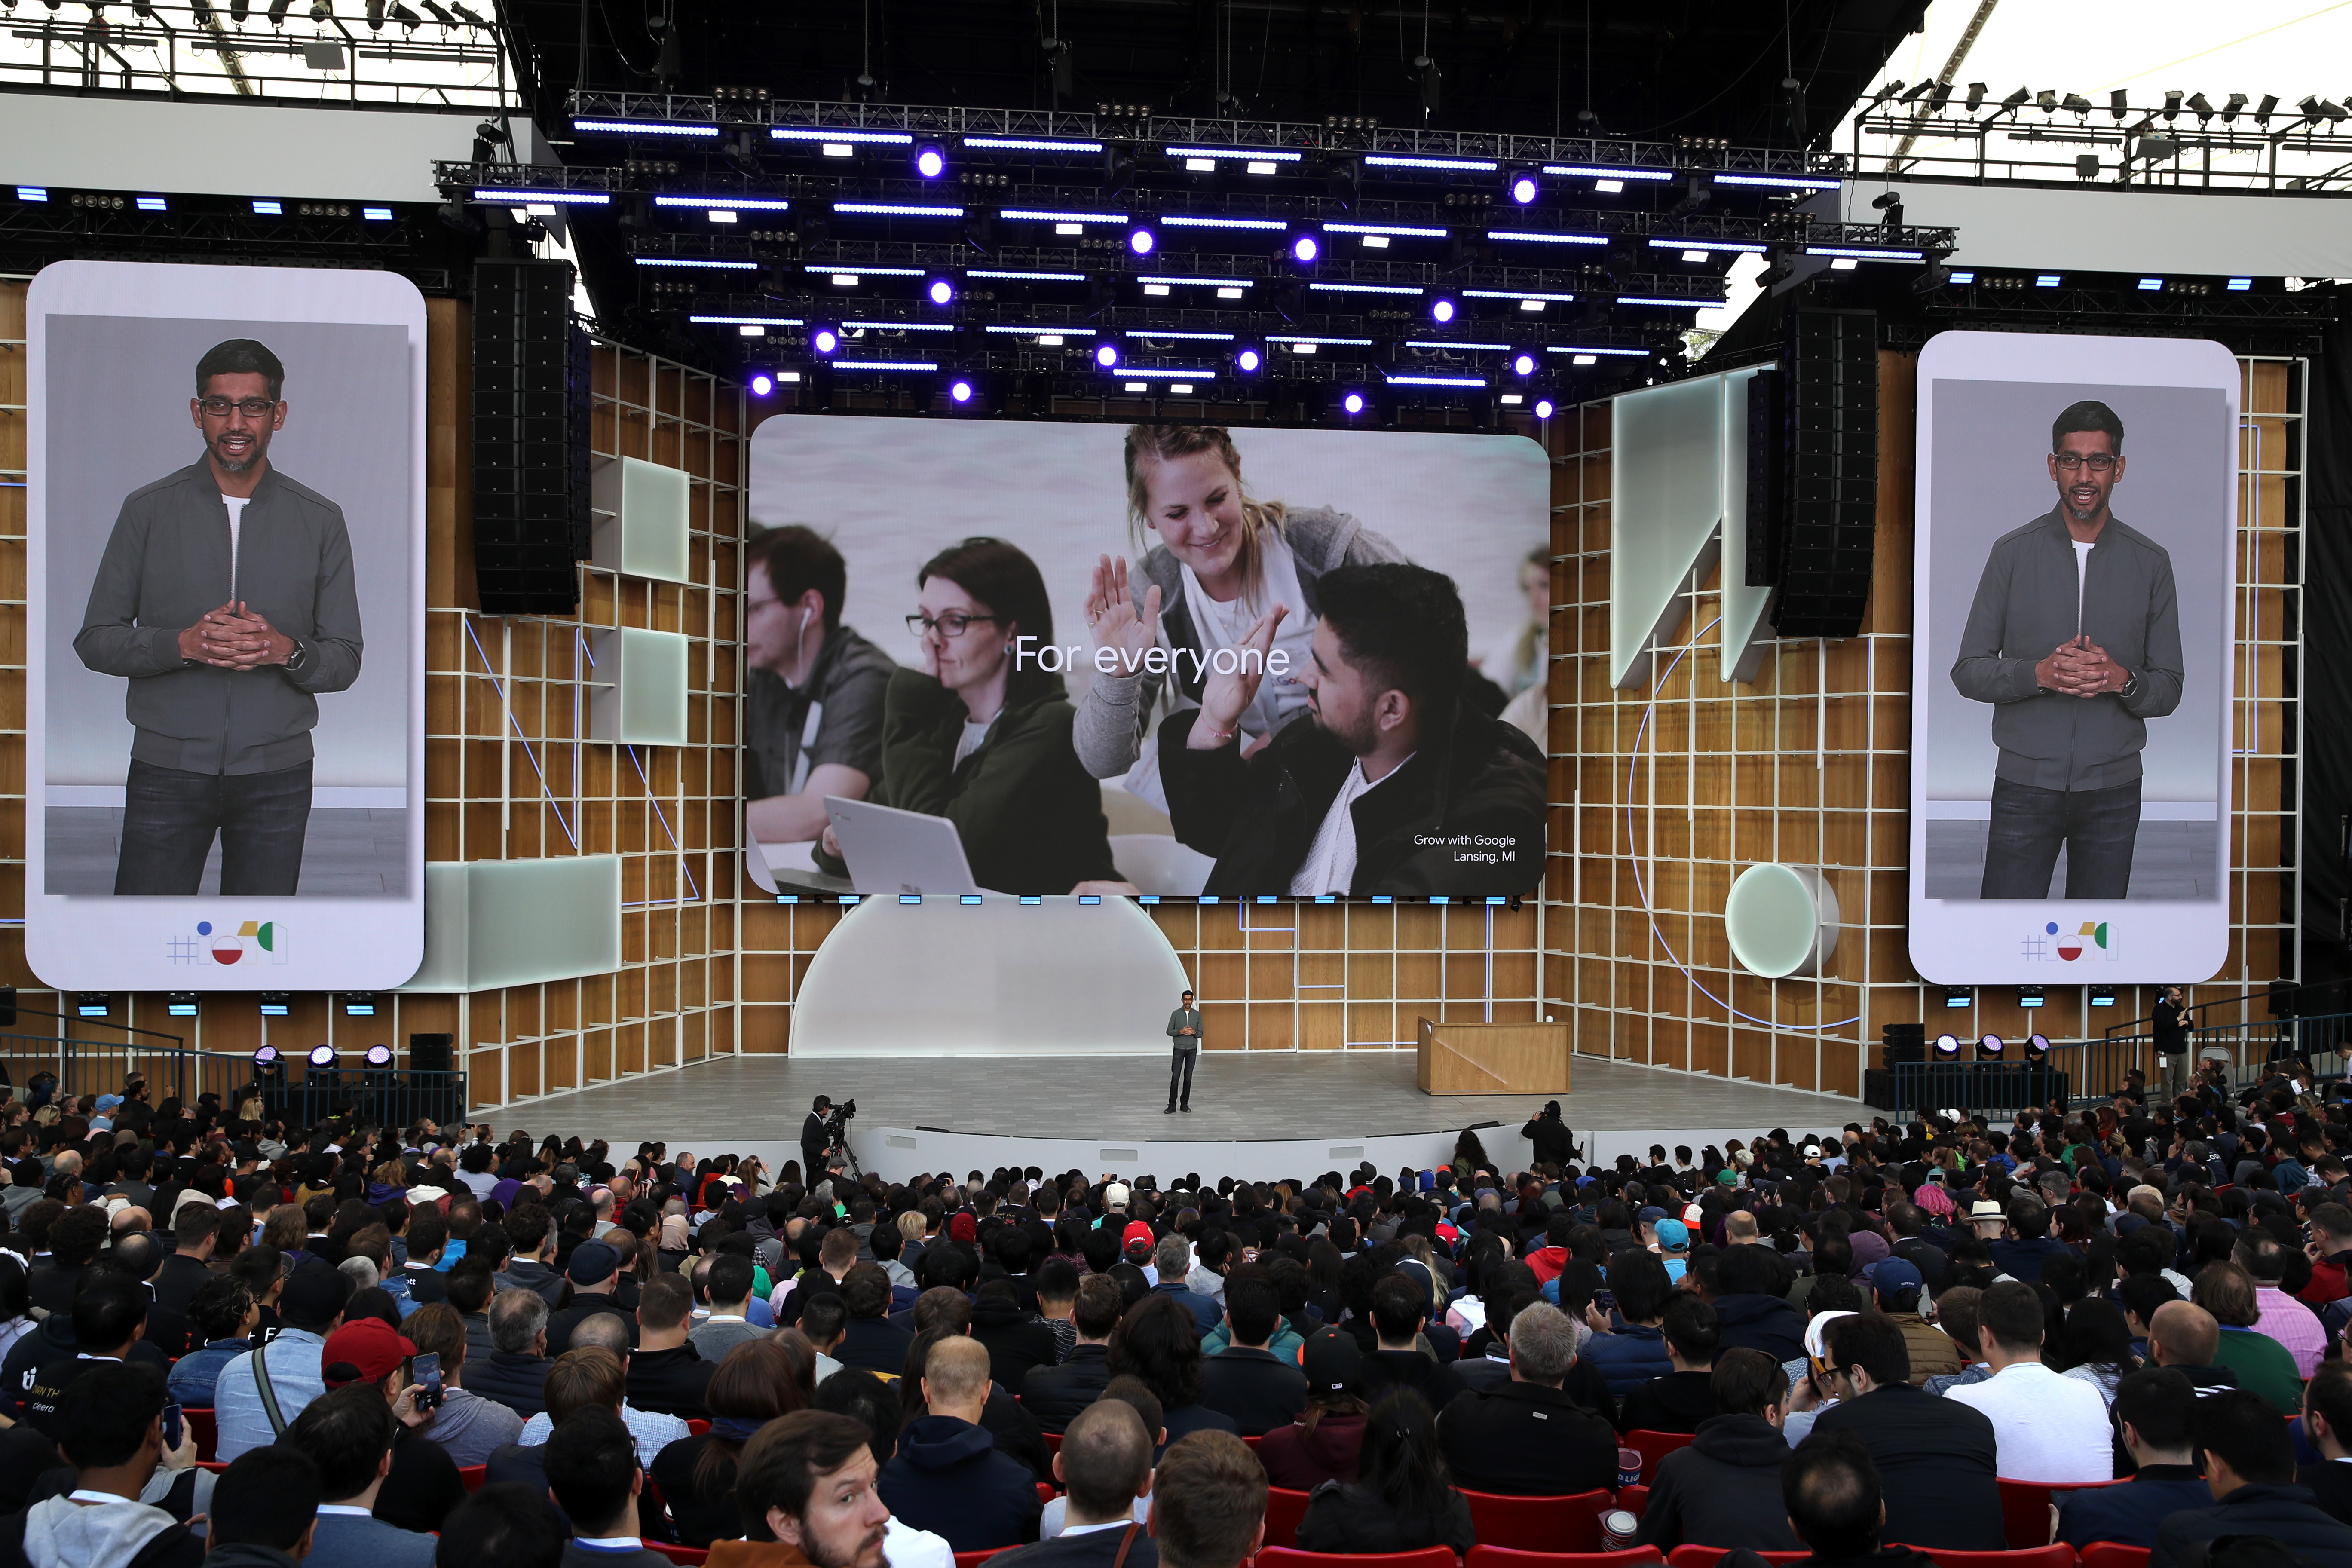 The stage at Google's annual I/O developers conference showing CEO Sundar Pichai in flanking video images.